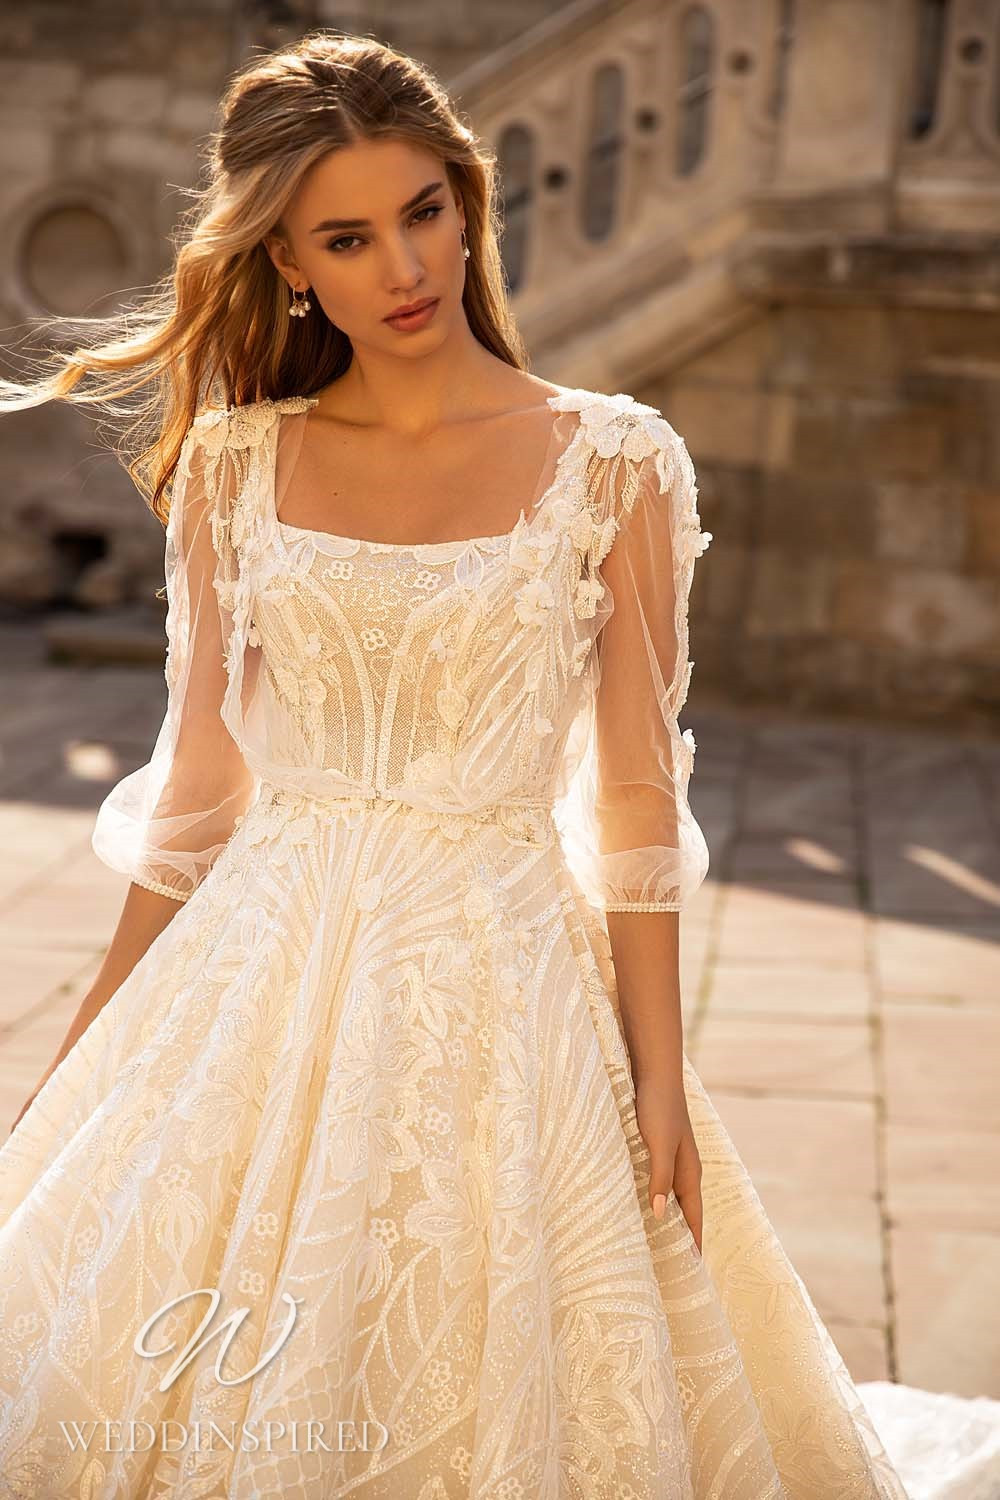 A WONÁ Concept 2021 ivory lace princess wedding dress with long sleeves